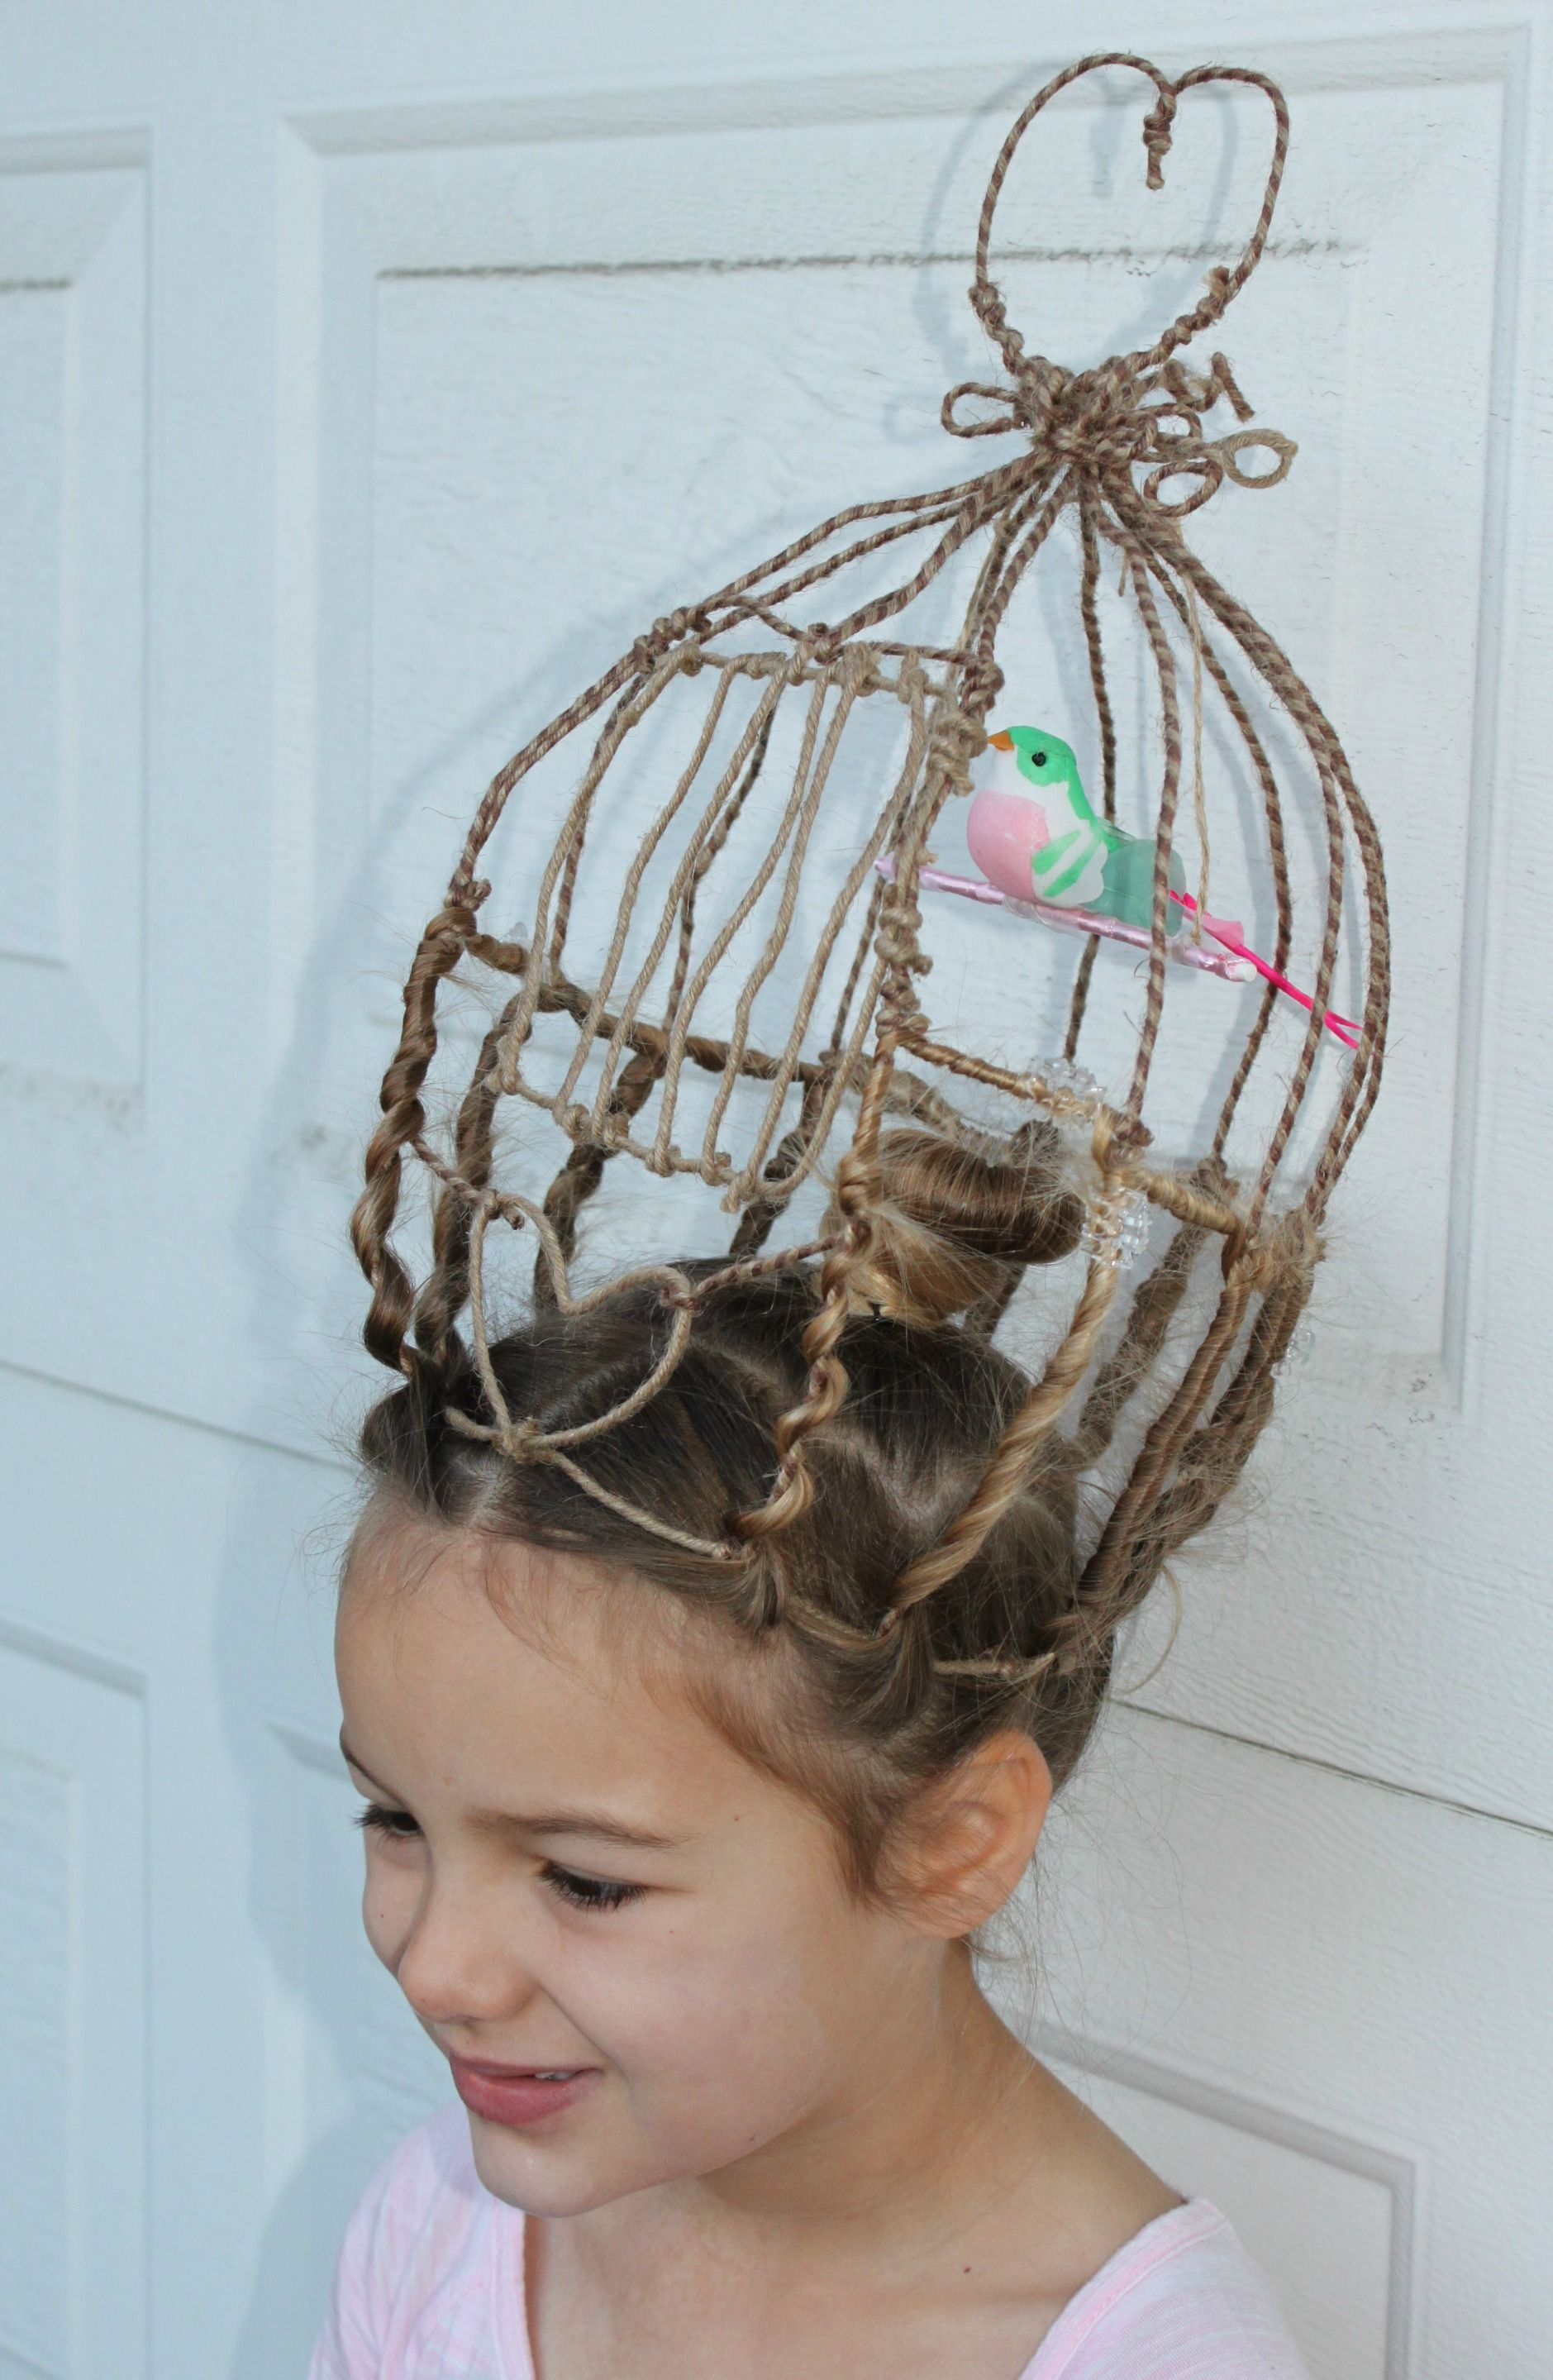 crazy hair day at school! birdcage , bird swinging on perch